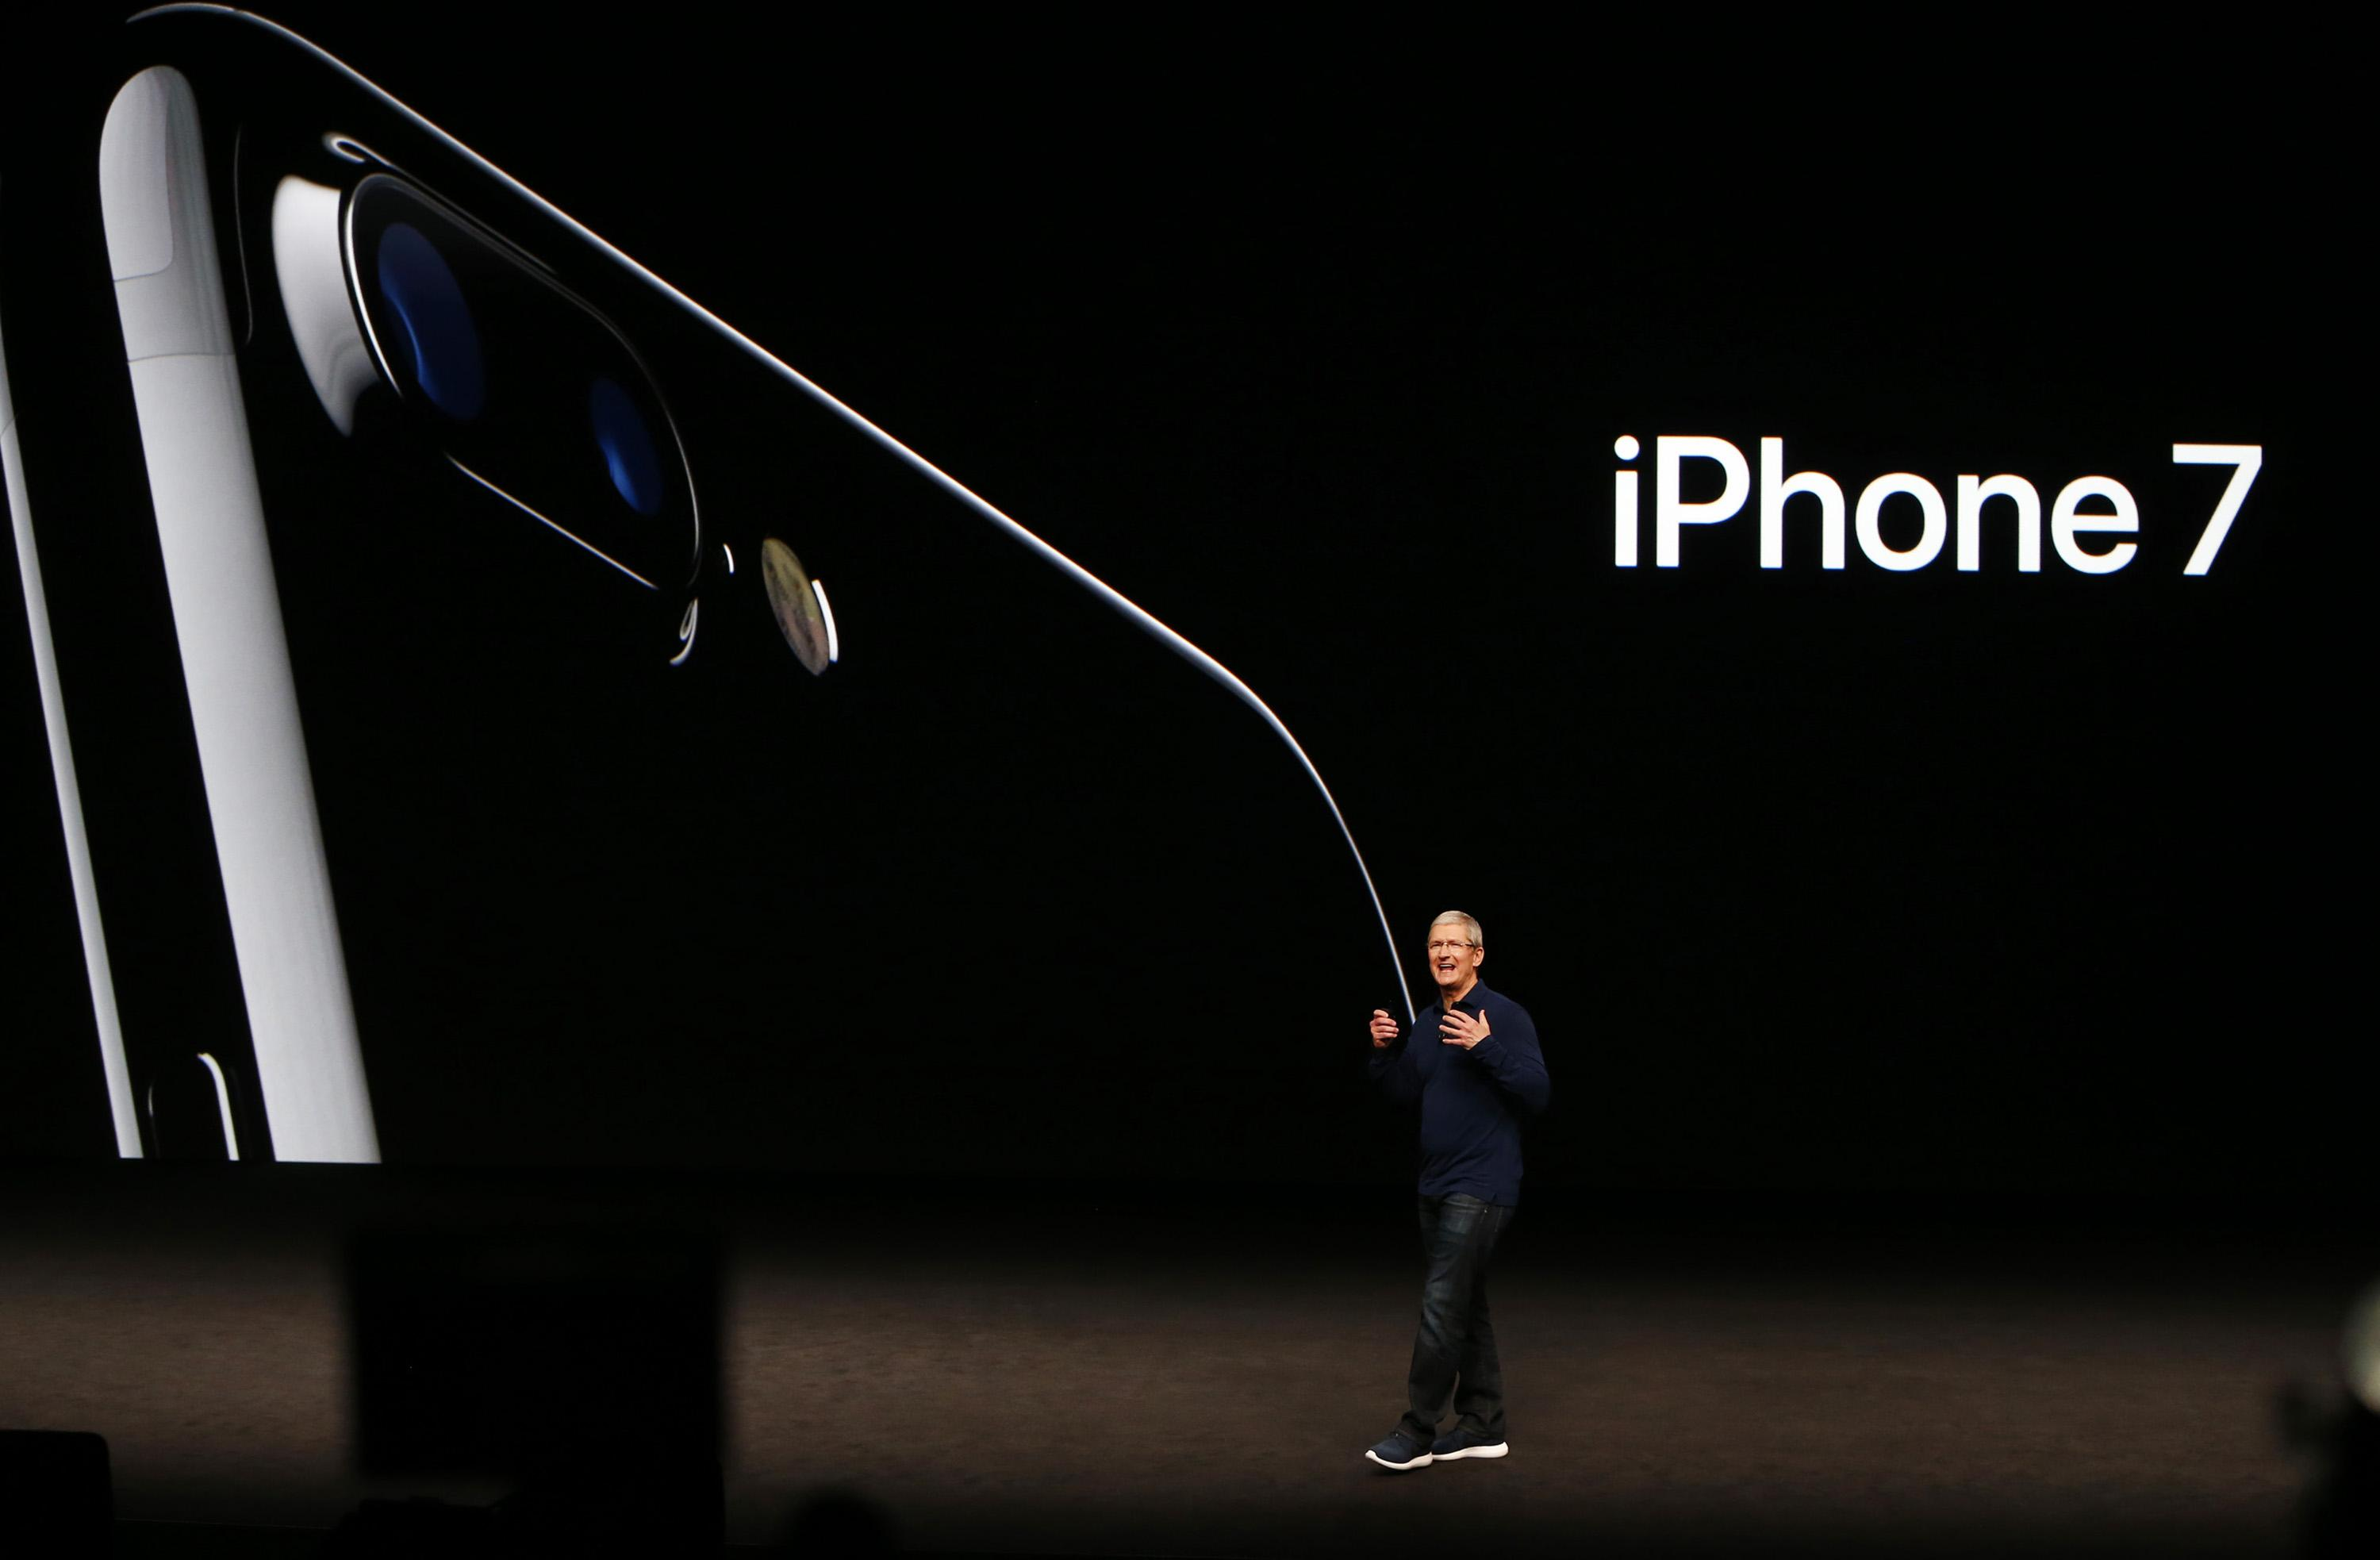 Tim Cook gives presentation on iPhone 7